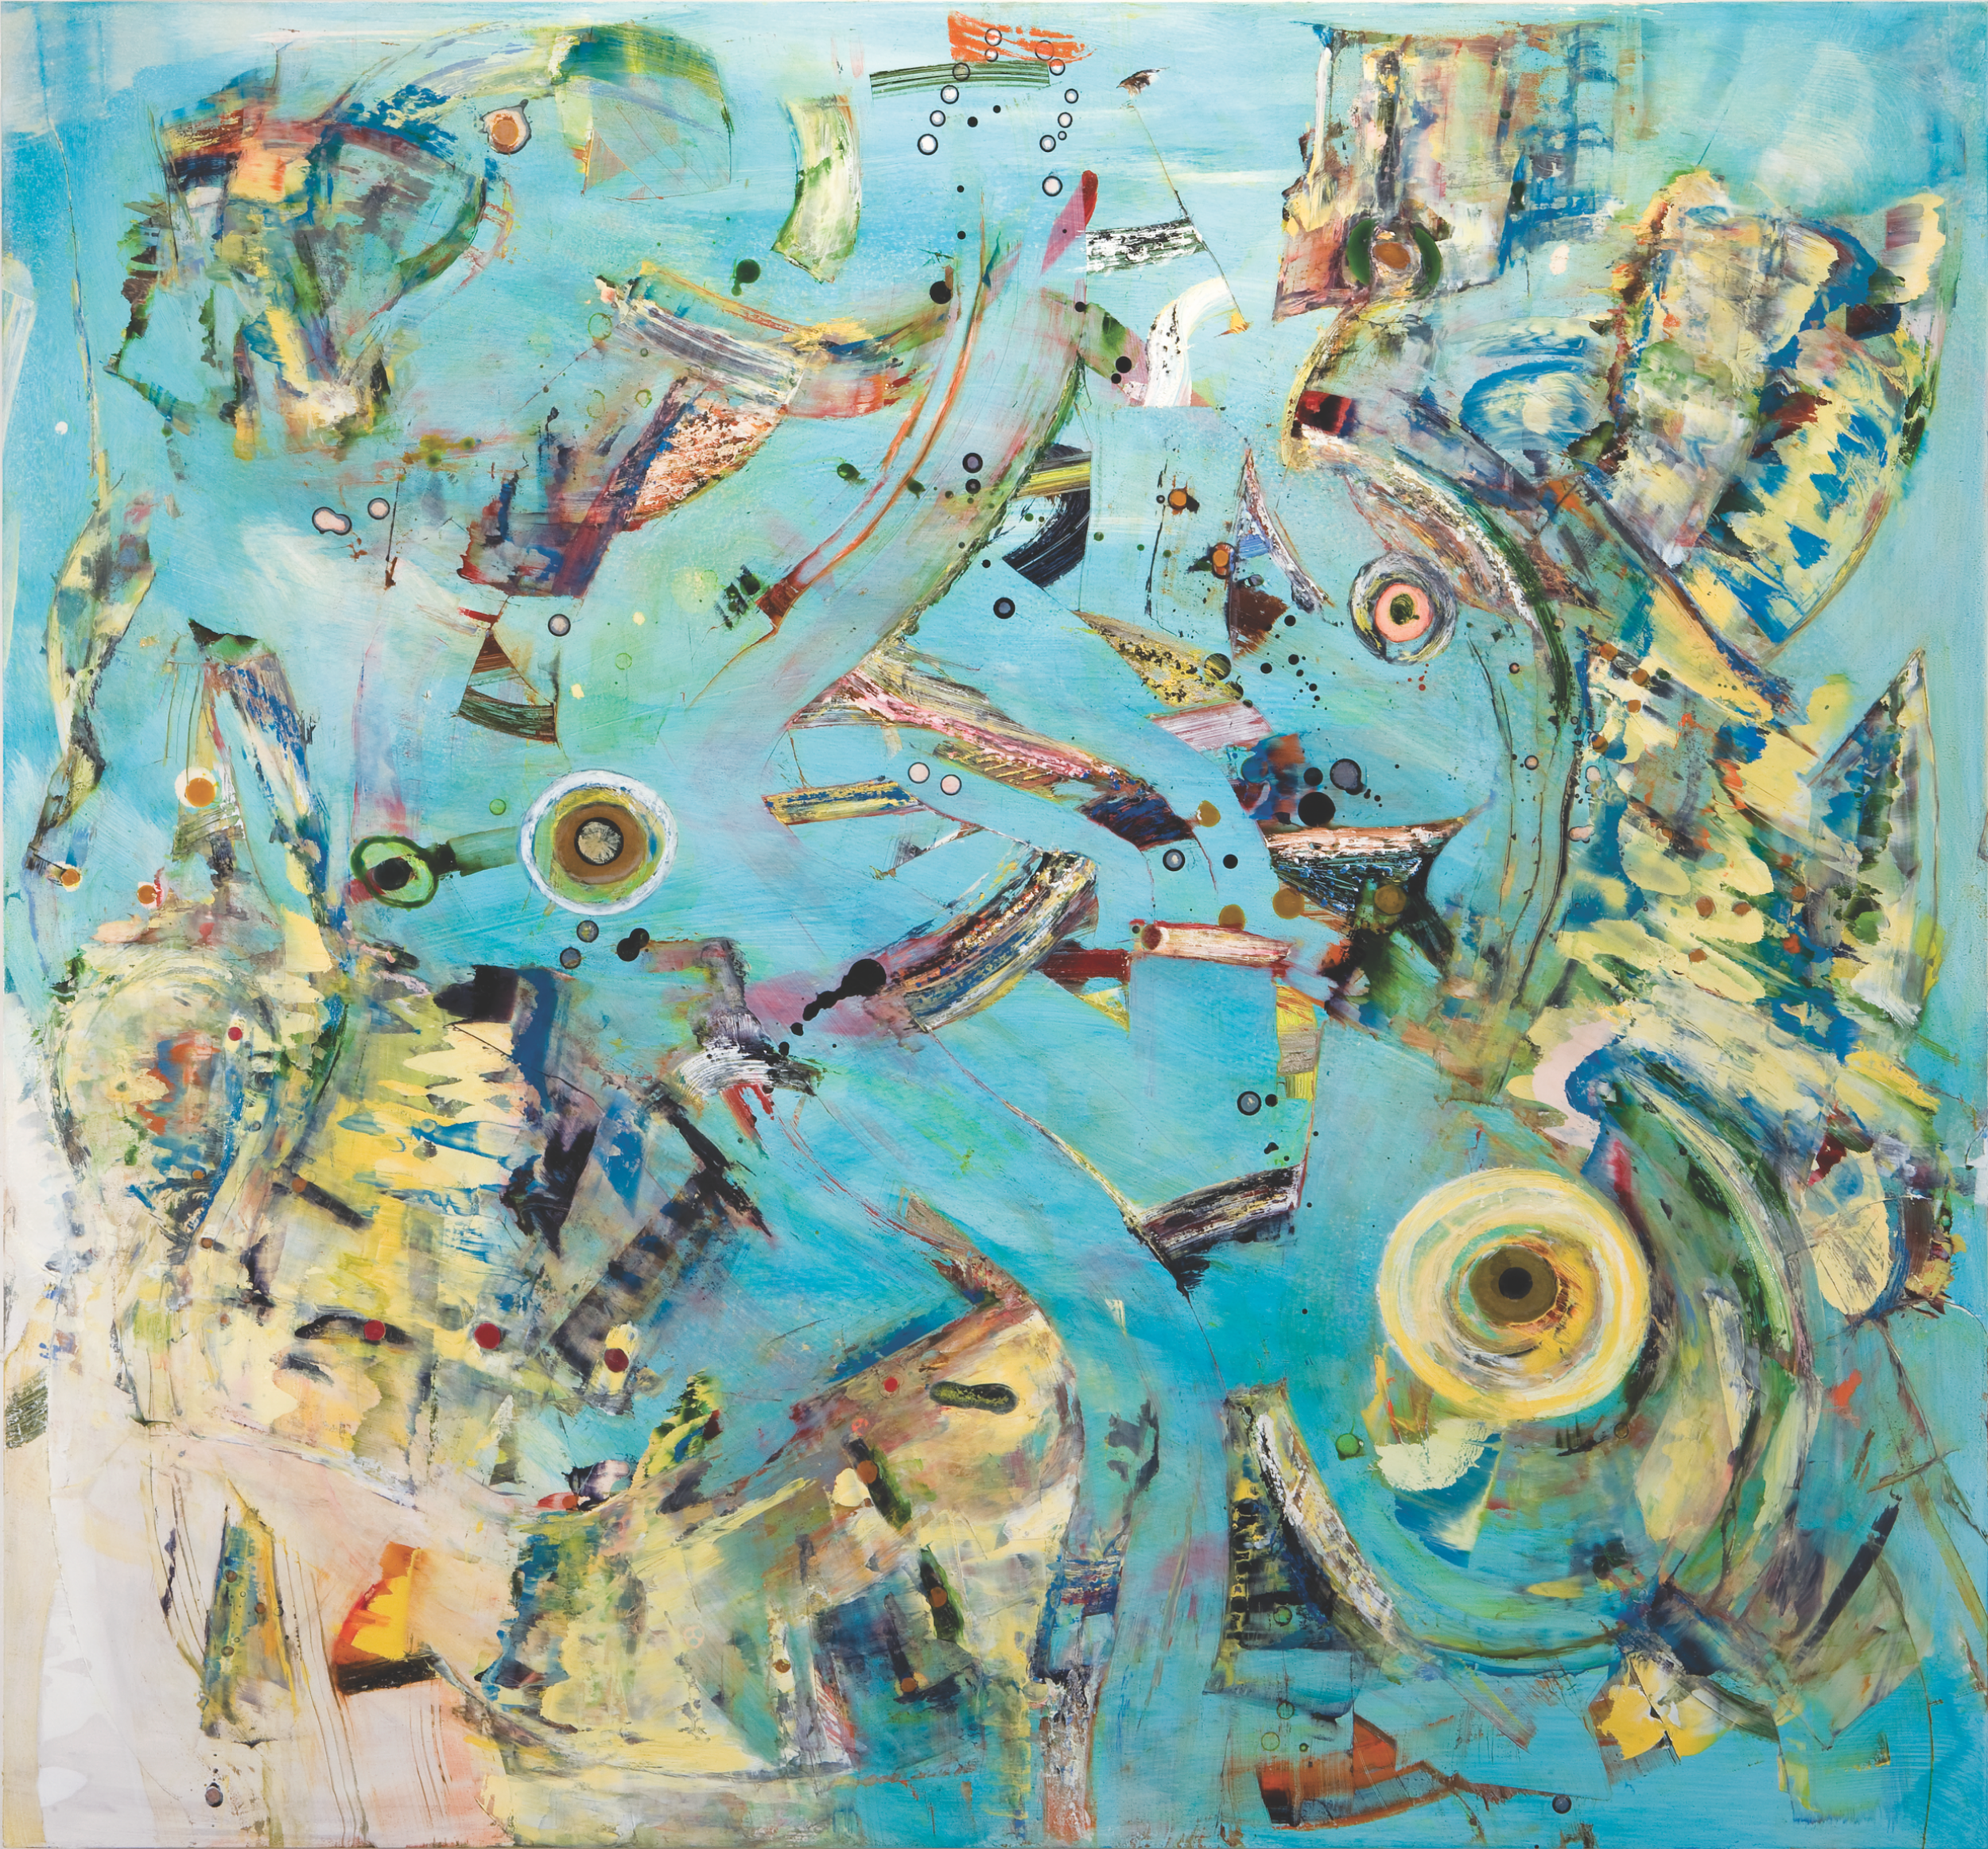 "The Circle Quickens, shellac ink and oil on wood panel, 37"" x 39 1/2"", 2008"